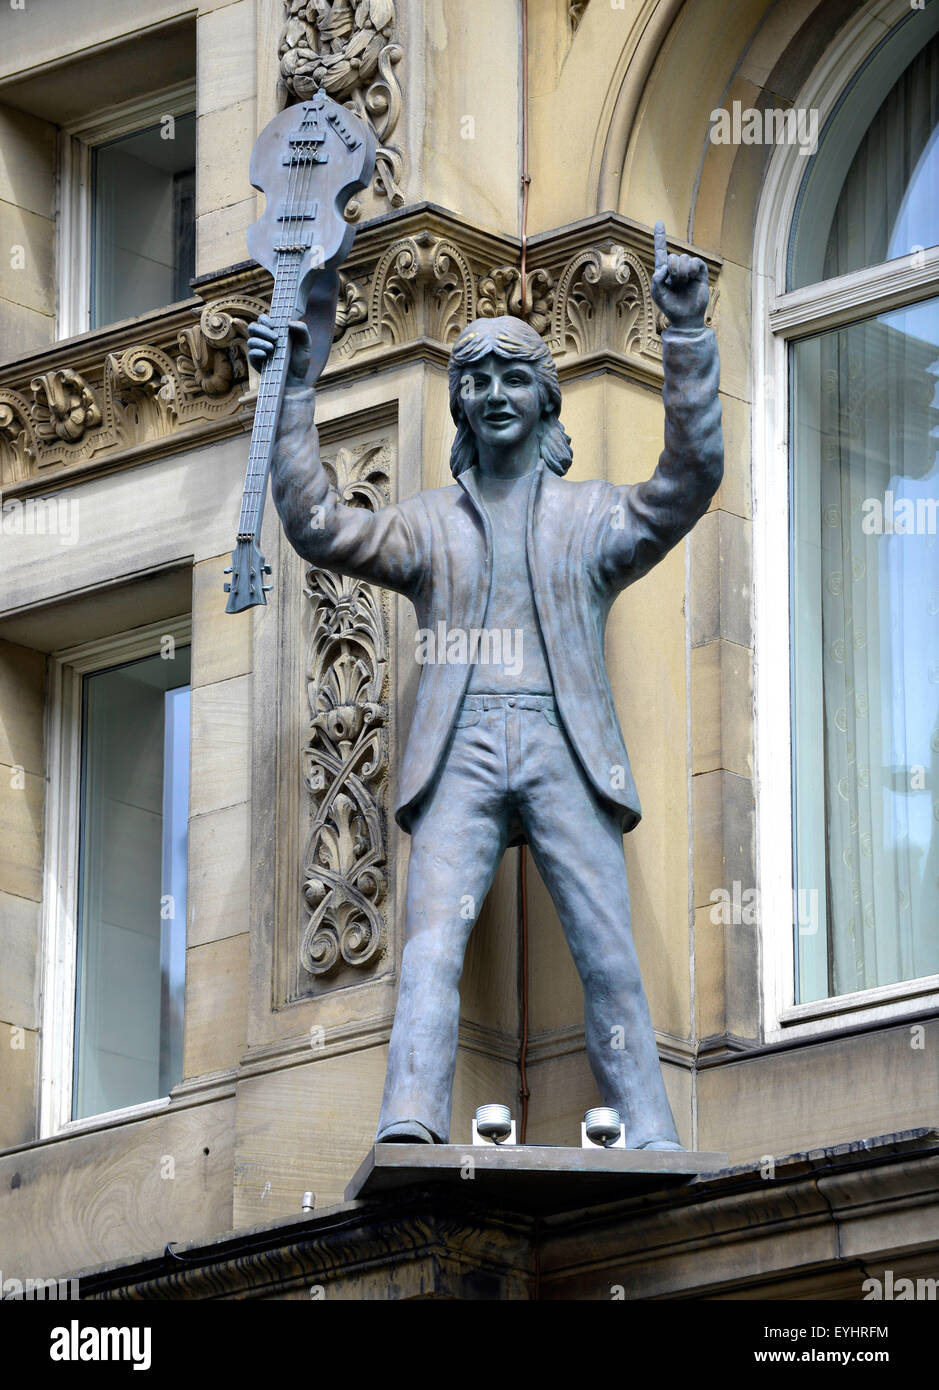 Statue of Paul McCartney on the exterior of the Hard Day's Night Hotel. The City of Liverpool, Britain, UK - Stock Image